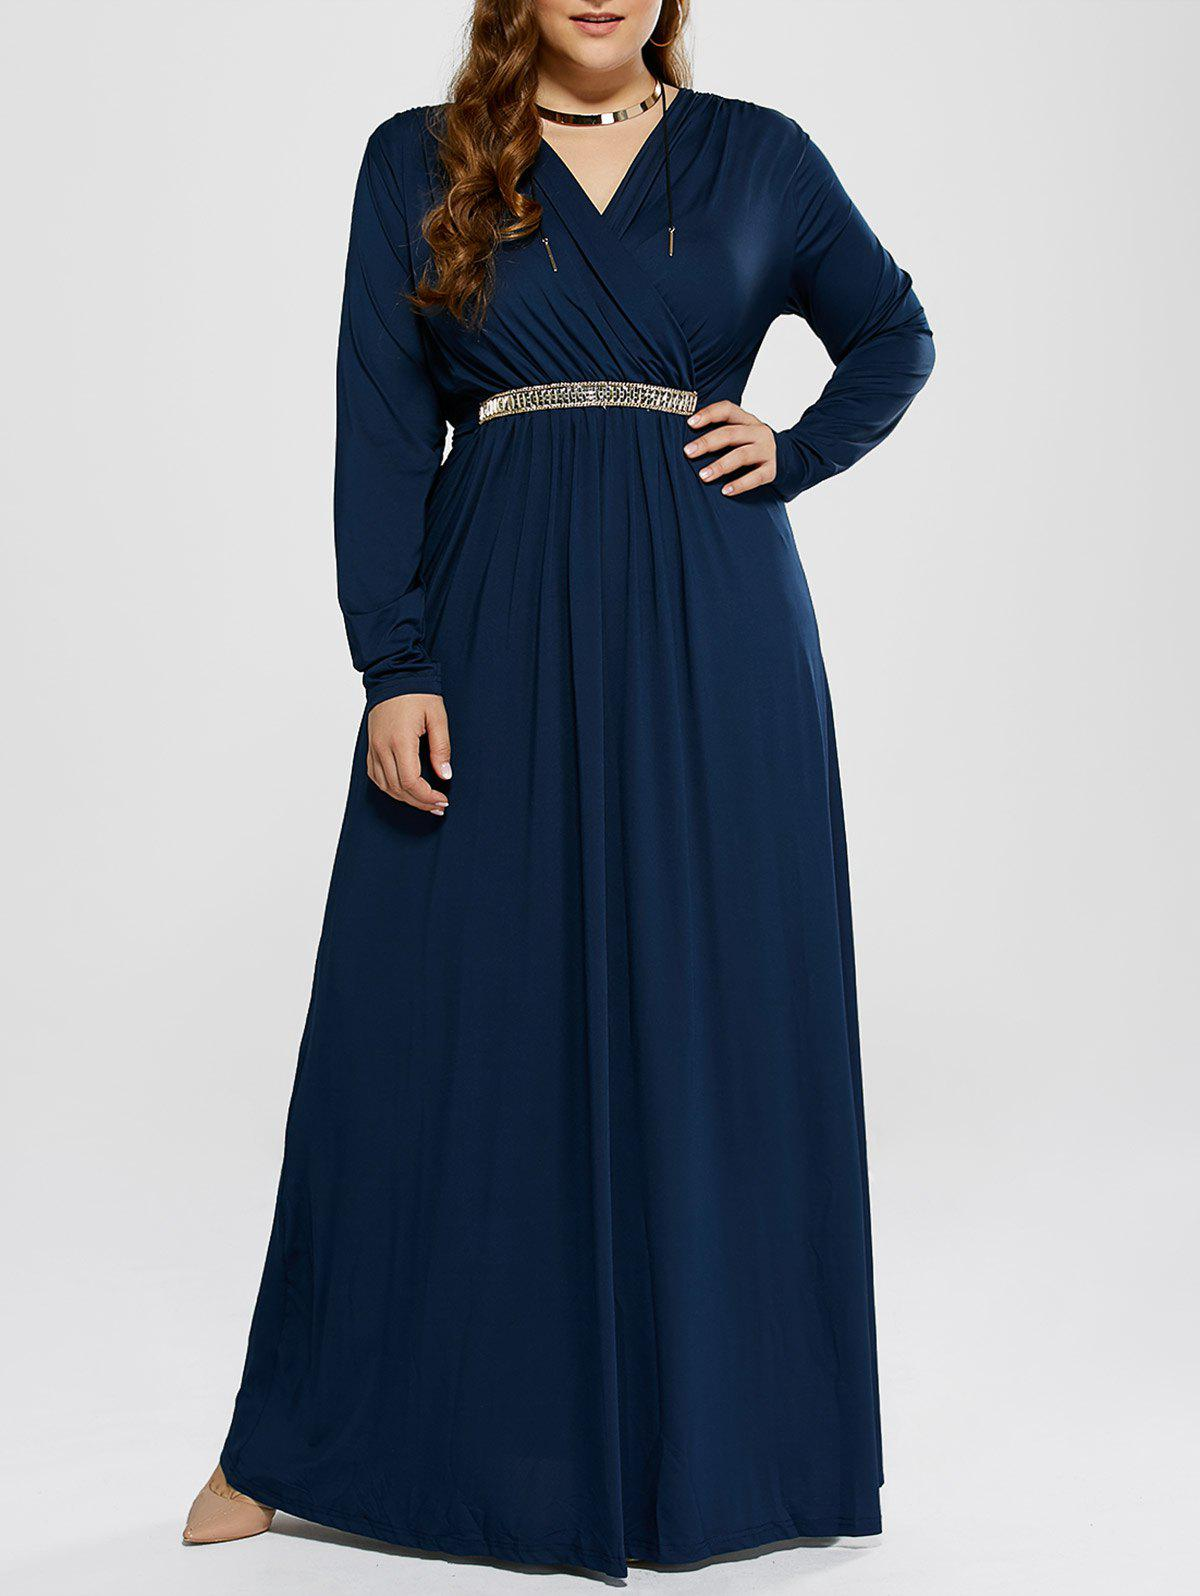 Plus Size Maxi Surplice Long Sleeve Prom DressWOMEN<br><br>Size: 3XL; Color: DEEP BLUE; Style: Club; Material: Polyester; Silhouette: A-Line; Dresses Length: Floor-Length; Neckline: V-Neck; Sleeve Length: Long Sleeves; Pattern Type: Solid; With Belt: No; Season: Fall,Spring; Weight: 0.477kg; Package Contents: 1 x Dress;